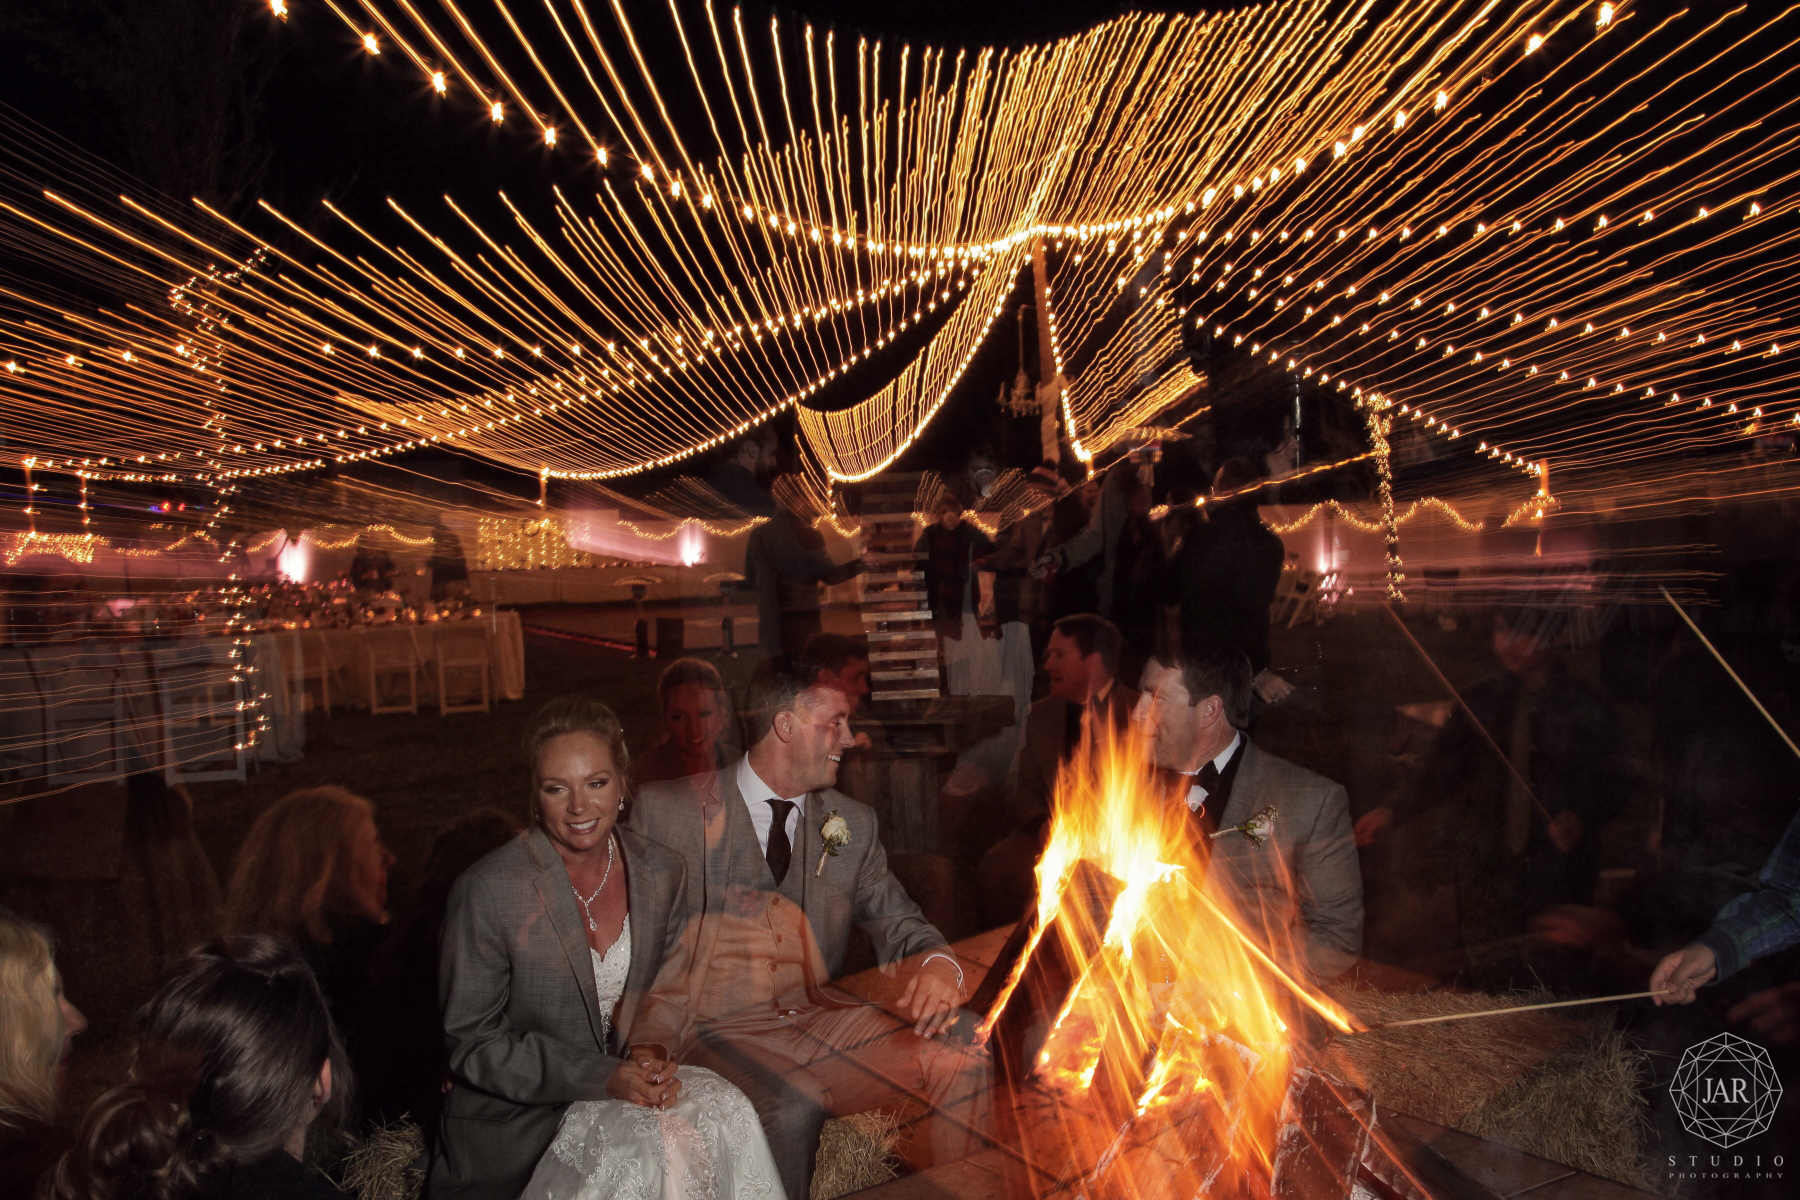 58-wedding-bonfire-party-jarstudio.JPG